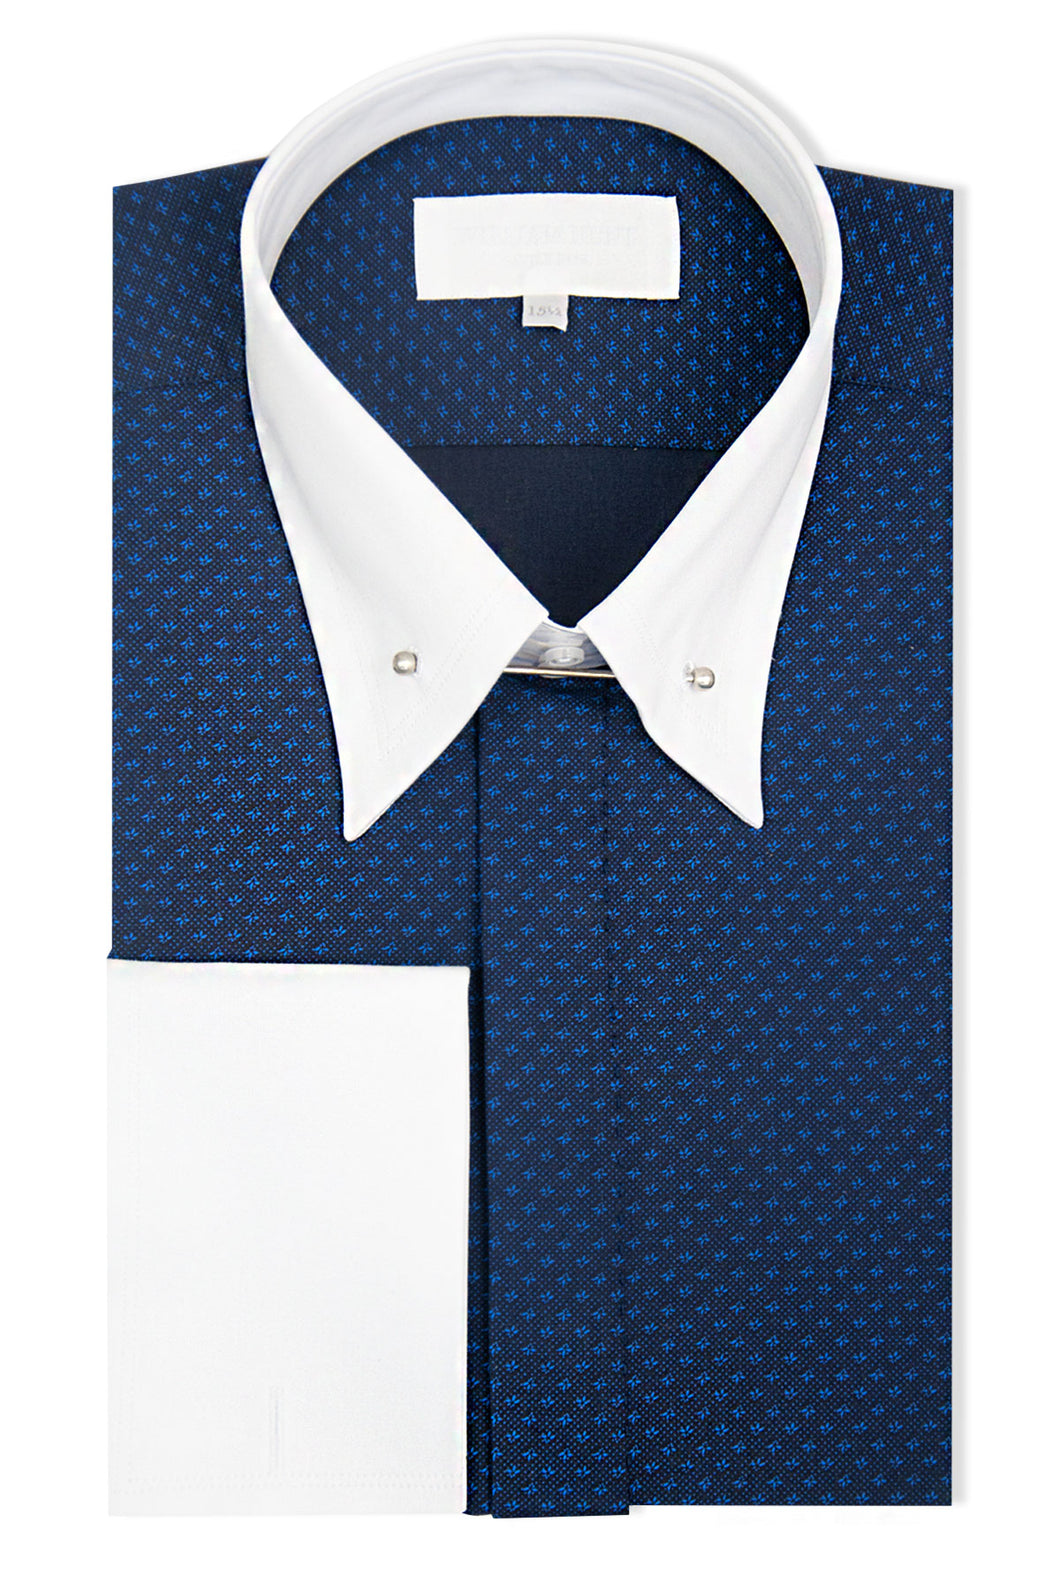 Navy with Blue Pattern Forward Point Shirt with Pin Collar